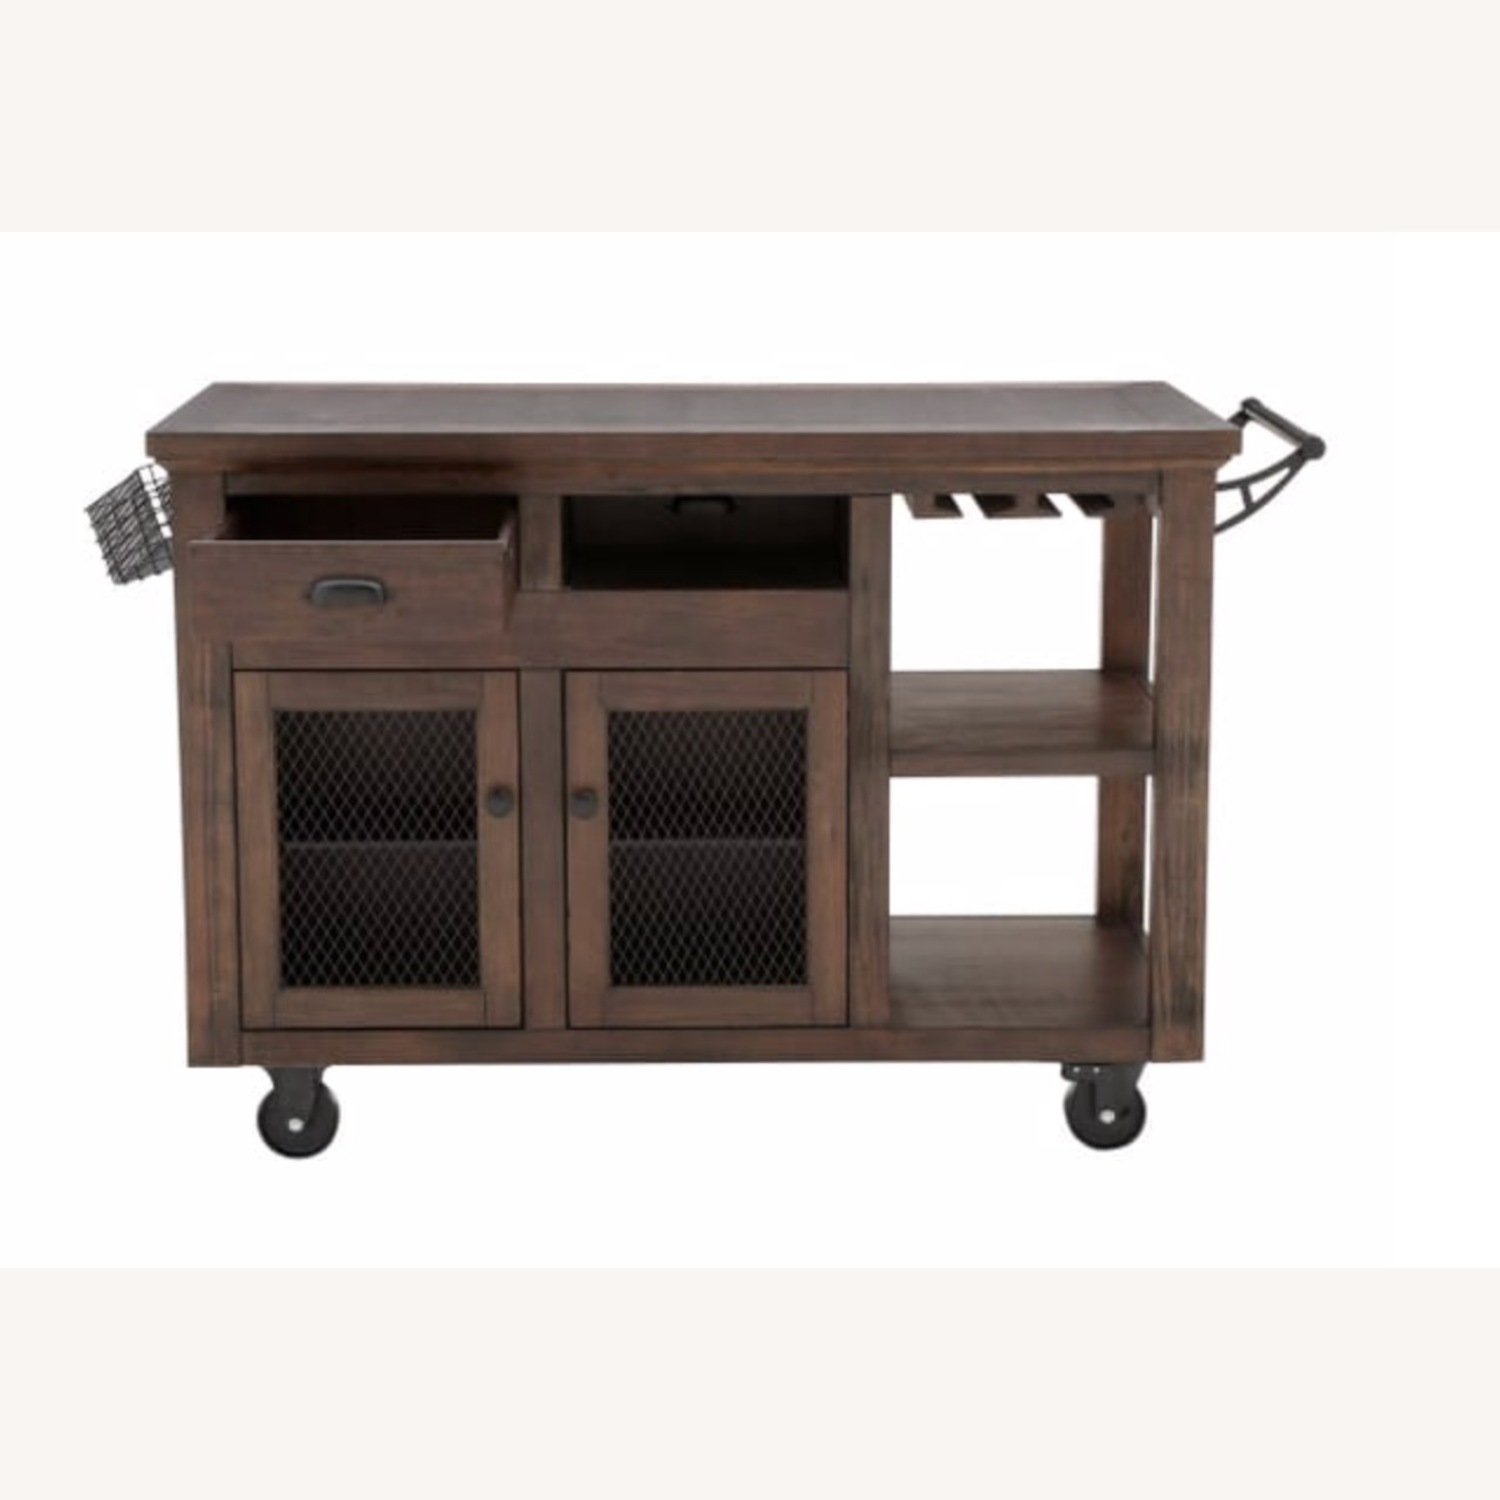 Cooper Rustic Walnut Kitchen Cart with Storage - image-2